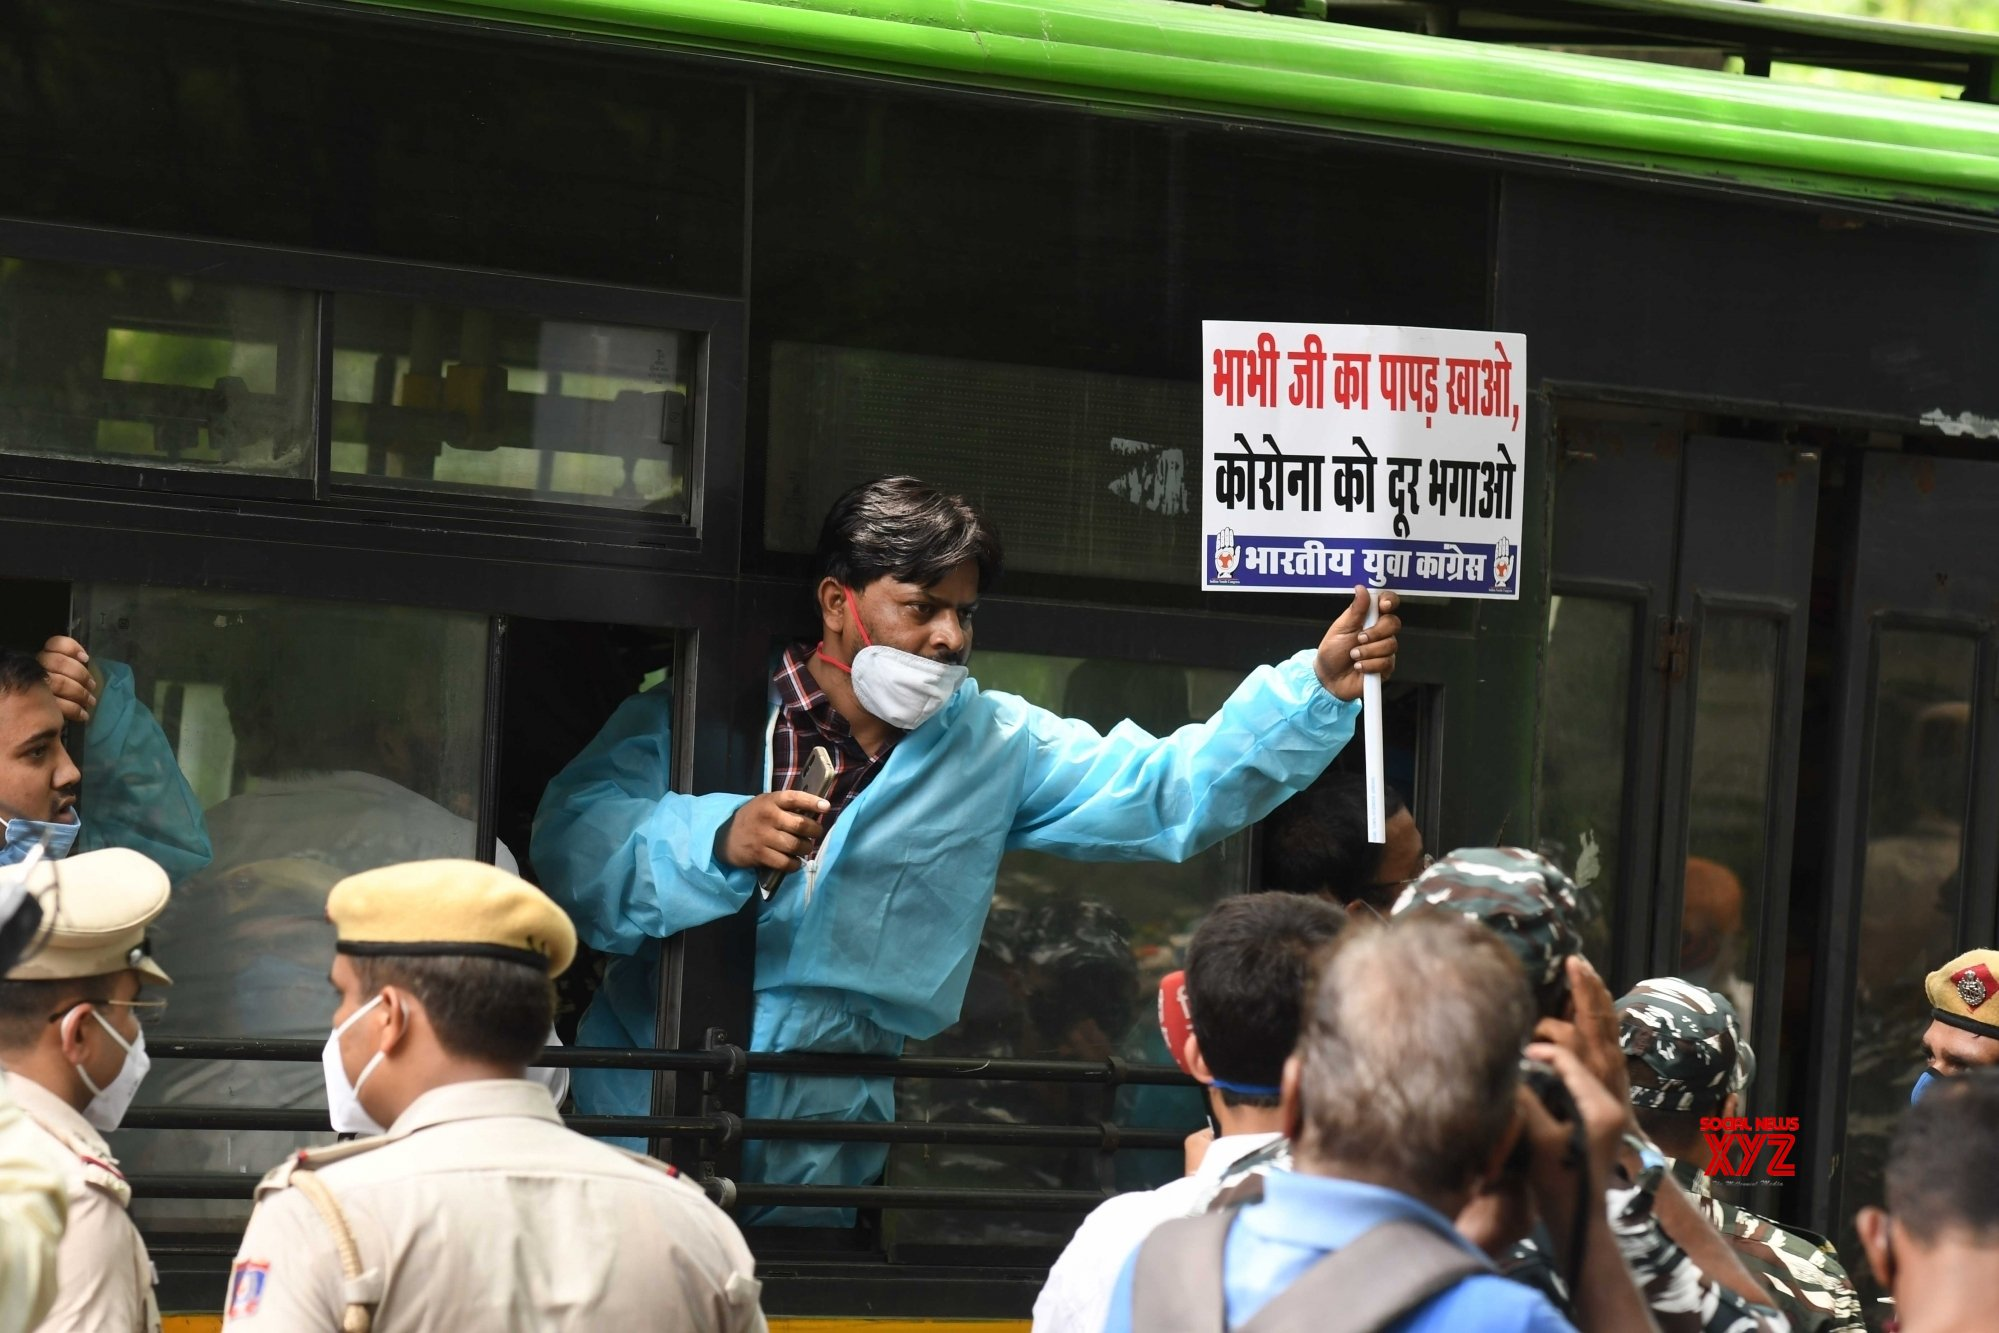 New Delhi: IYC protests against the Central Govt over rise in COVID - 19 cases #Gallery